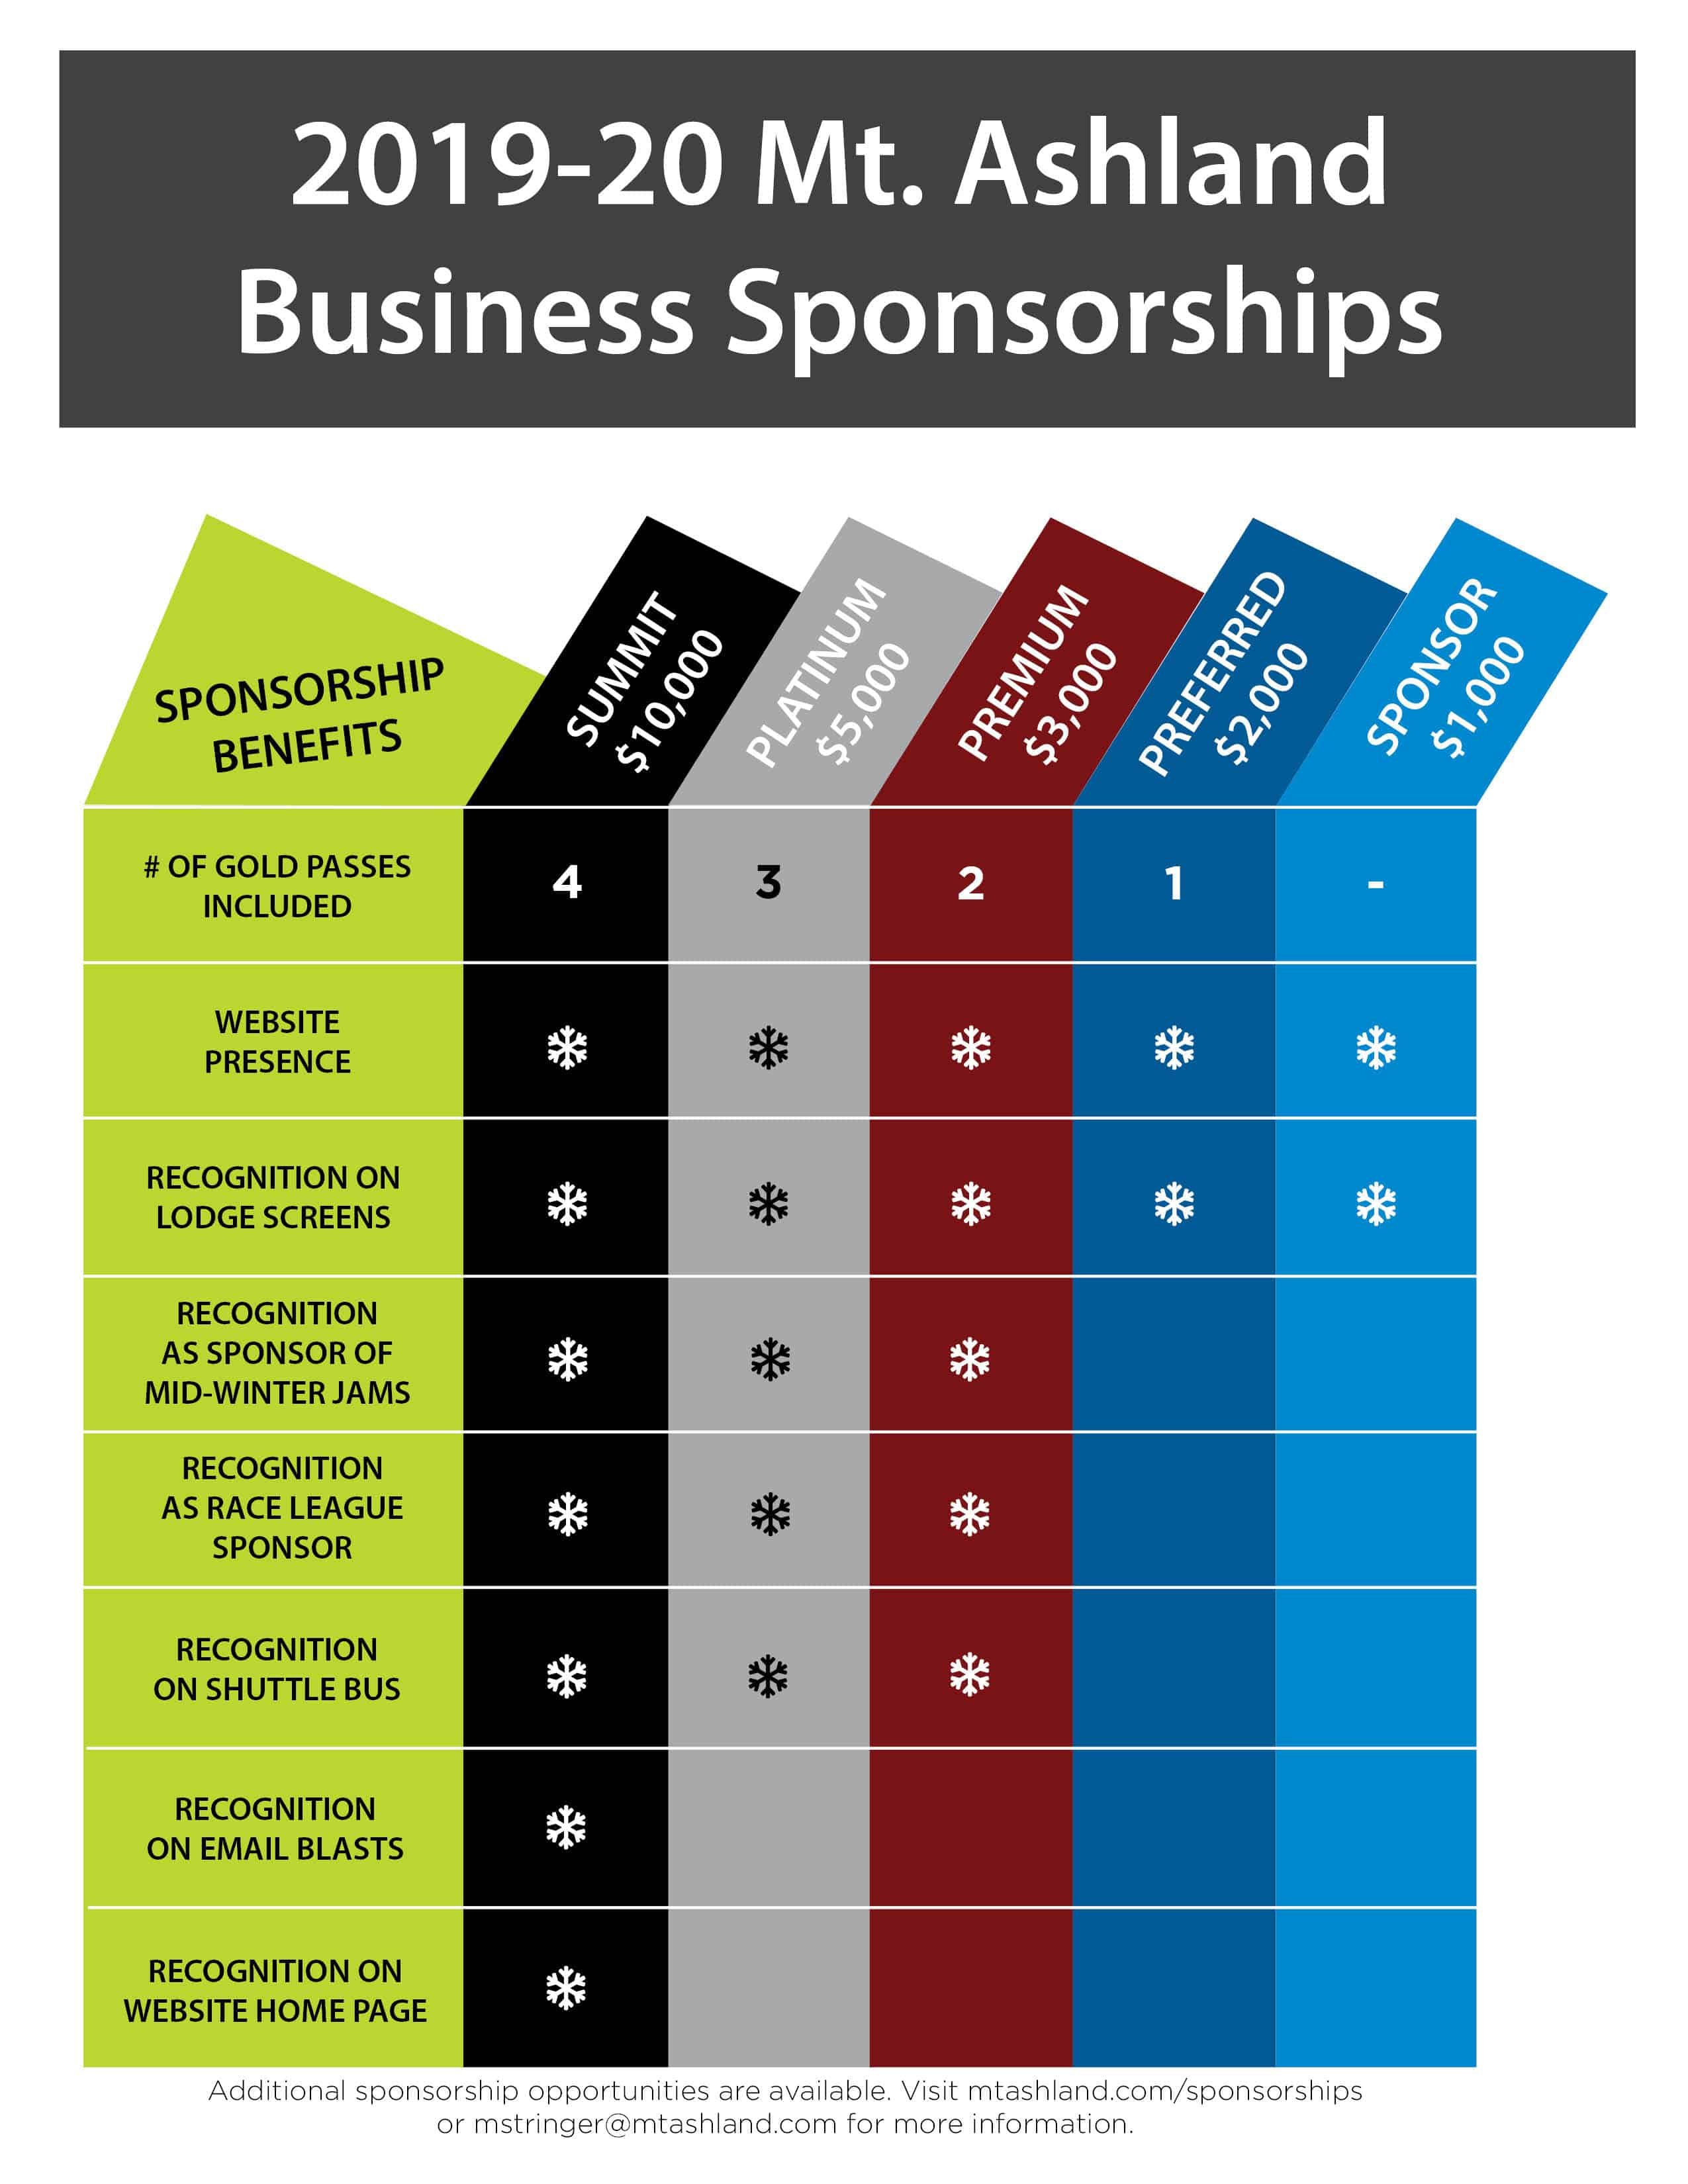 Become a Business Sponsor of Mt. Ashland today!